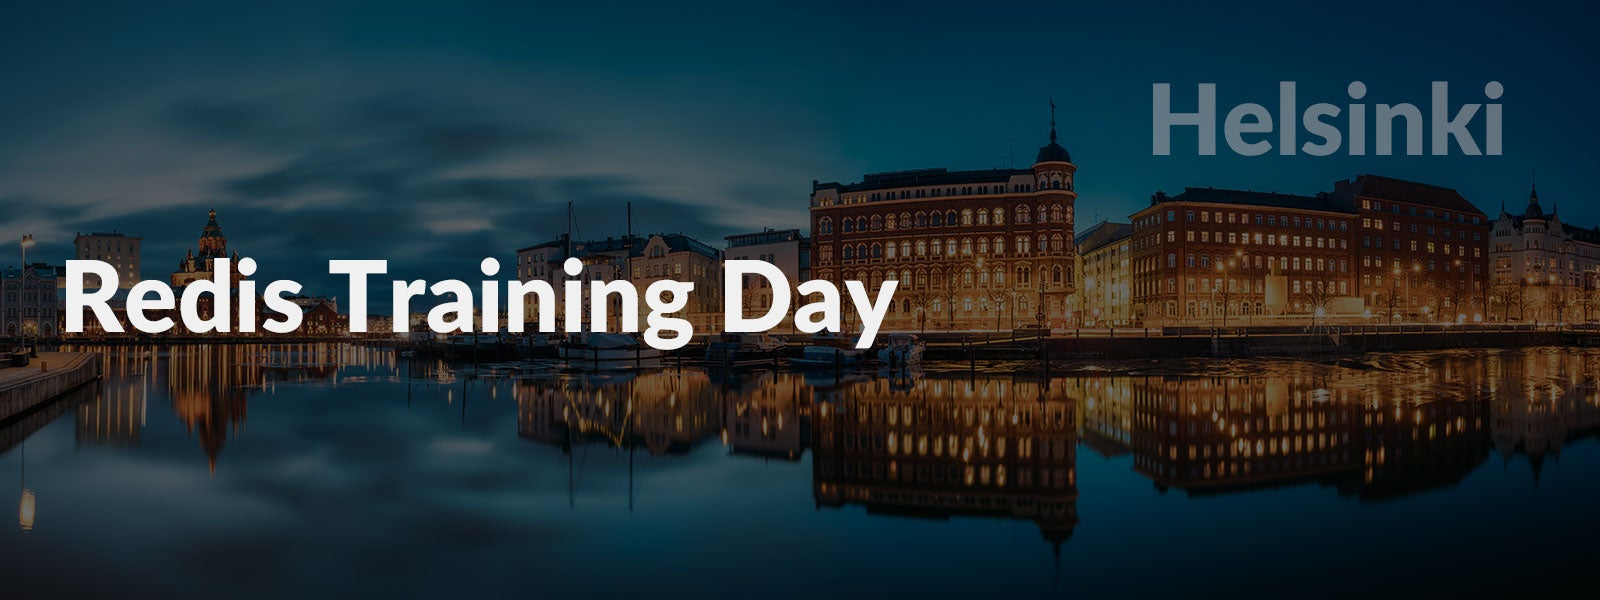 Redis Training Day Helsinki